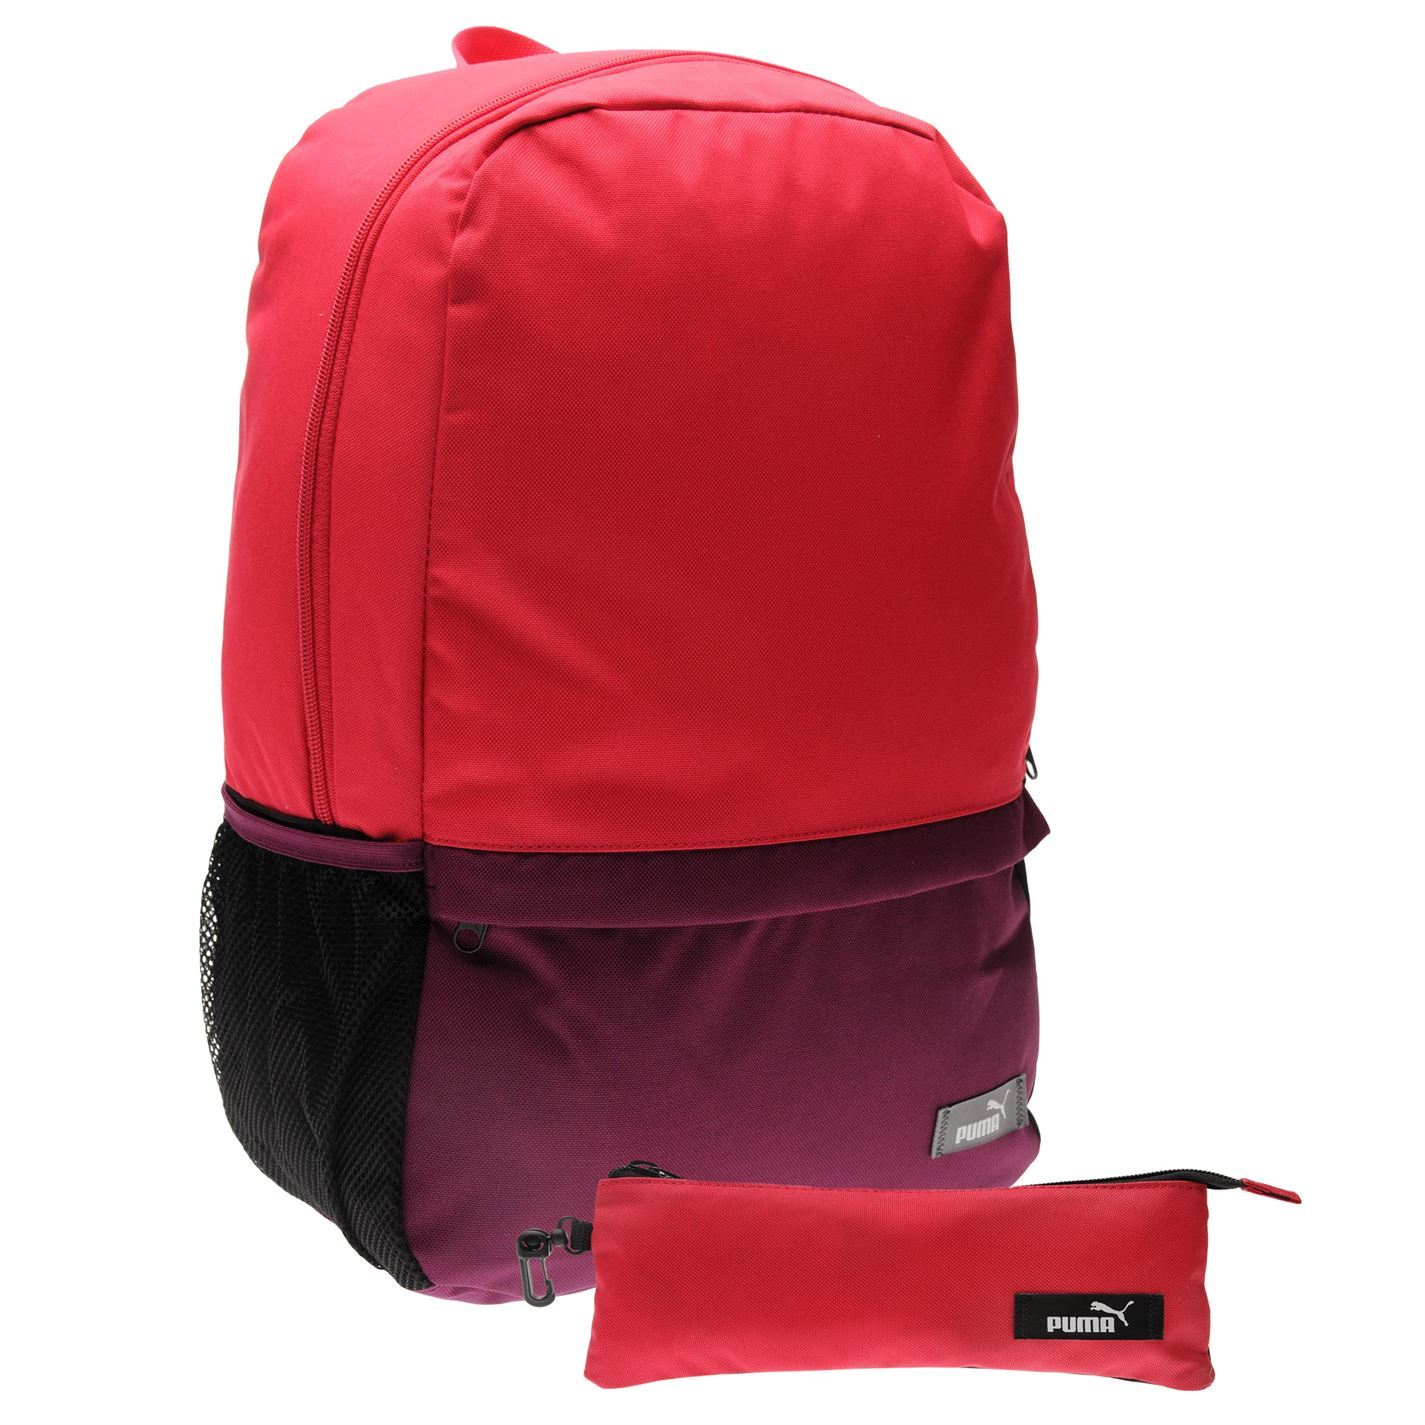 d3aef9401059 ... Puma Back To School Backpack with Pencil Case Purple School Bag Holdall  Rucksack ...